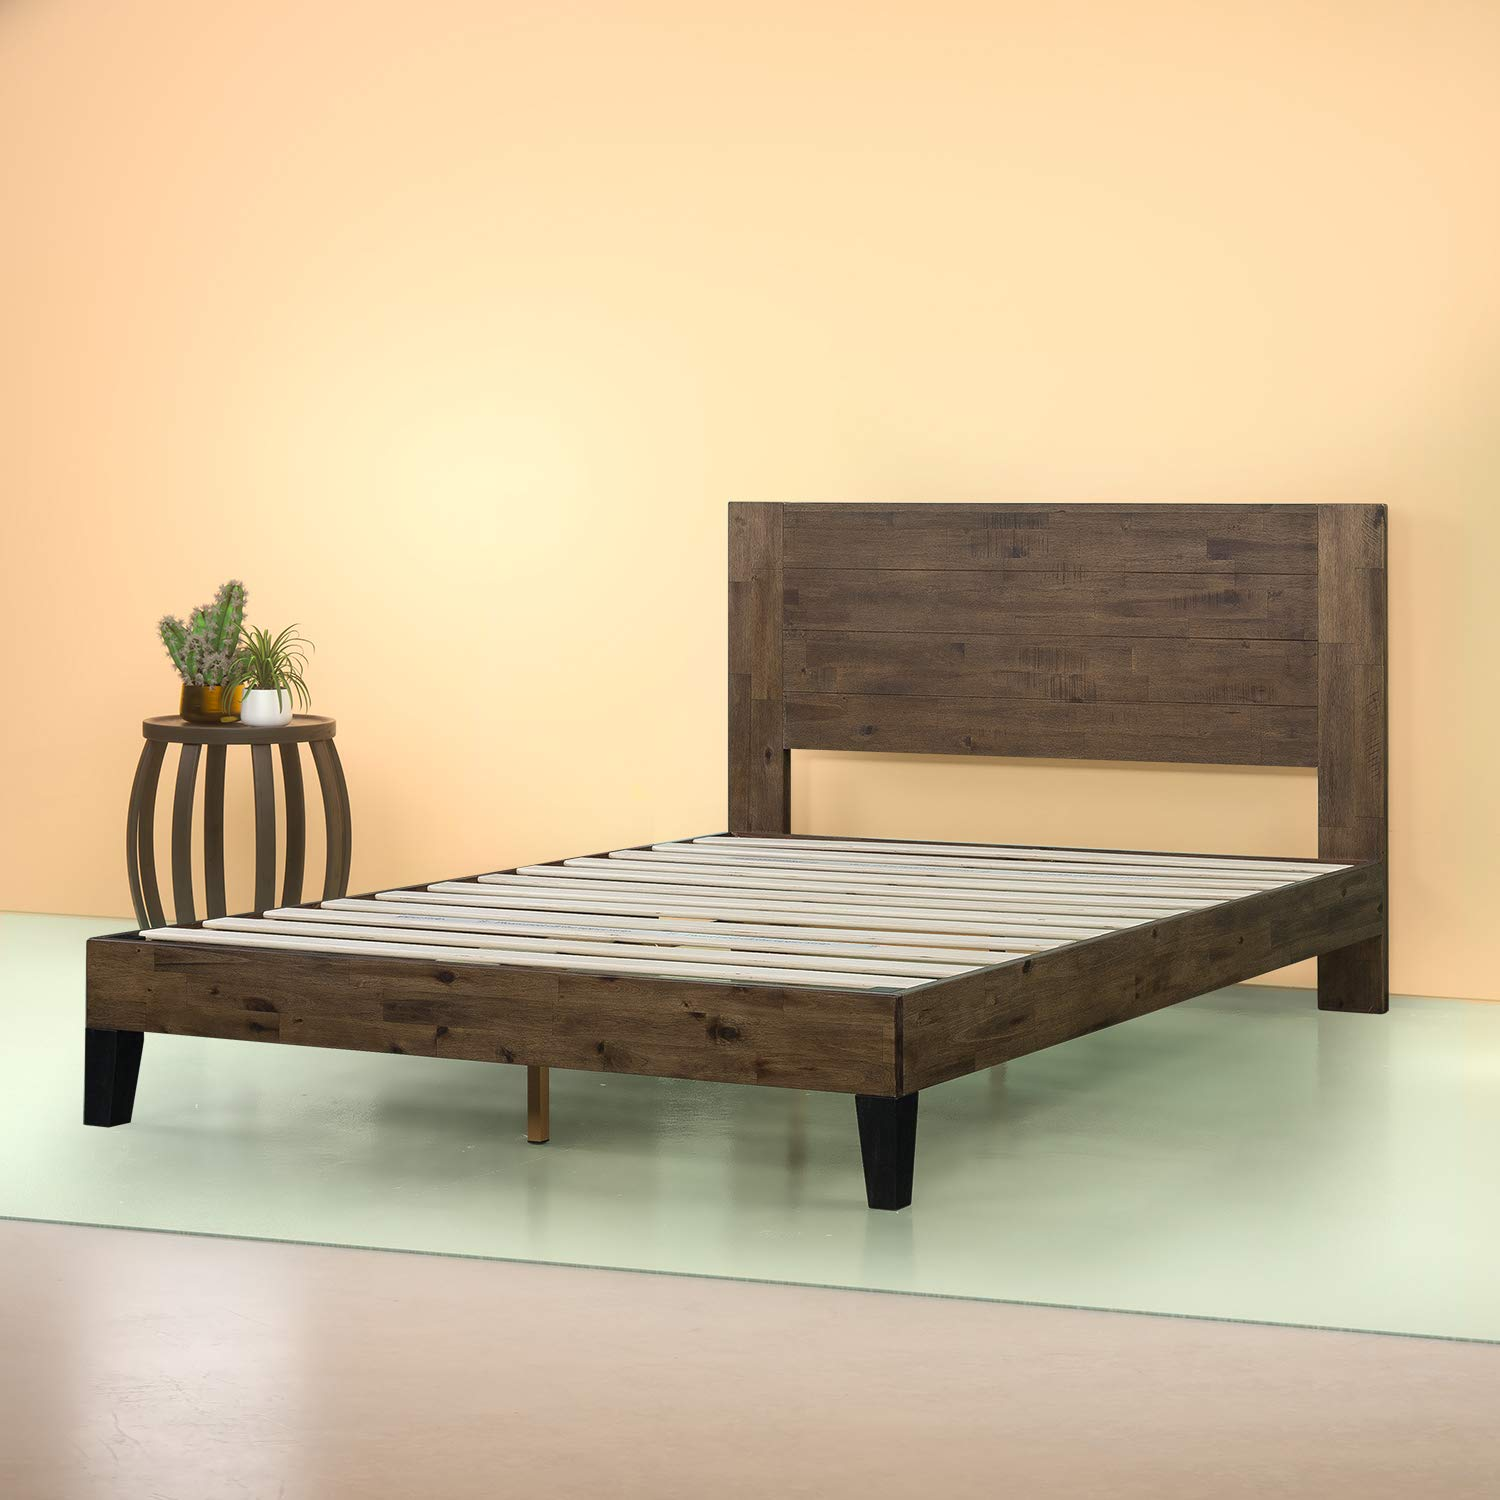 Zinus Tonja Platform Bed / Mattress Foundation / Box Spring Replacement / Brown, Queen by Zinus